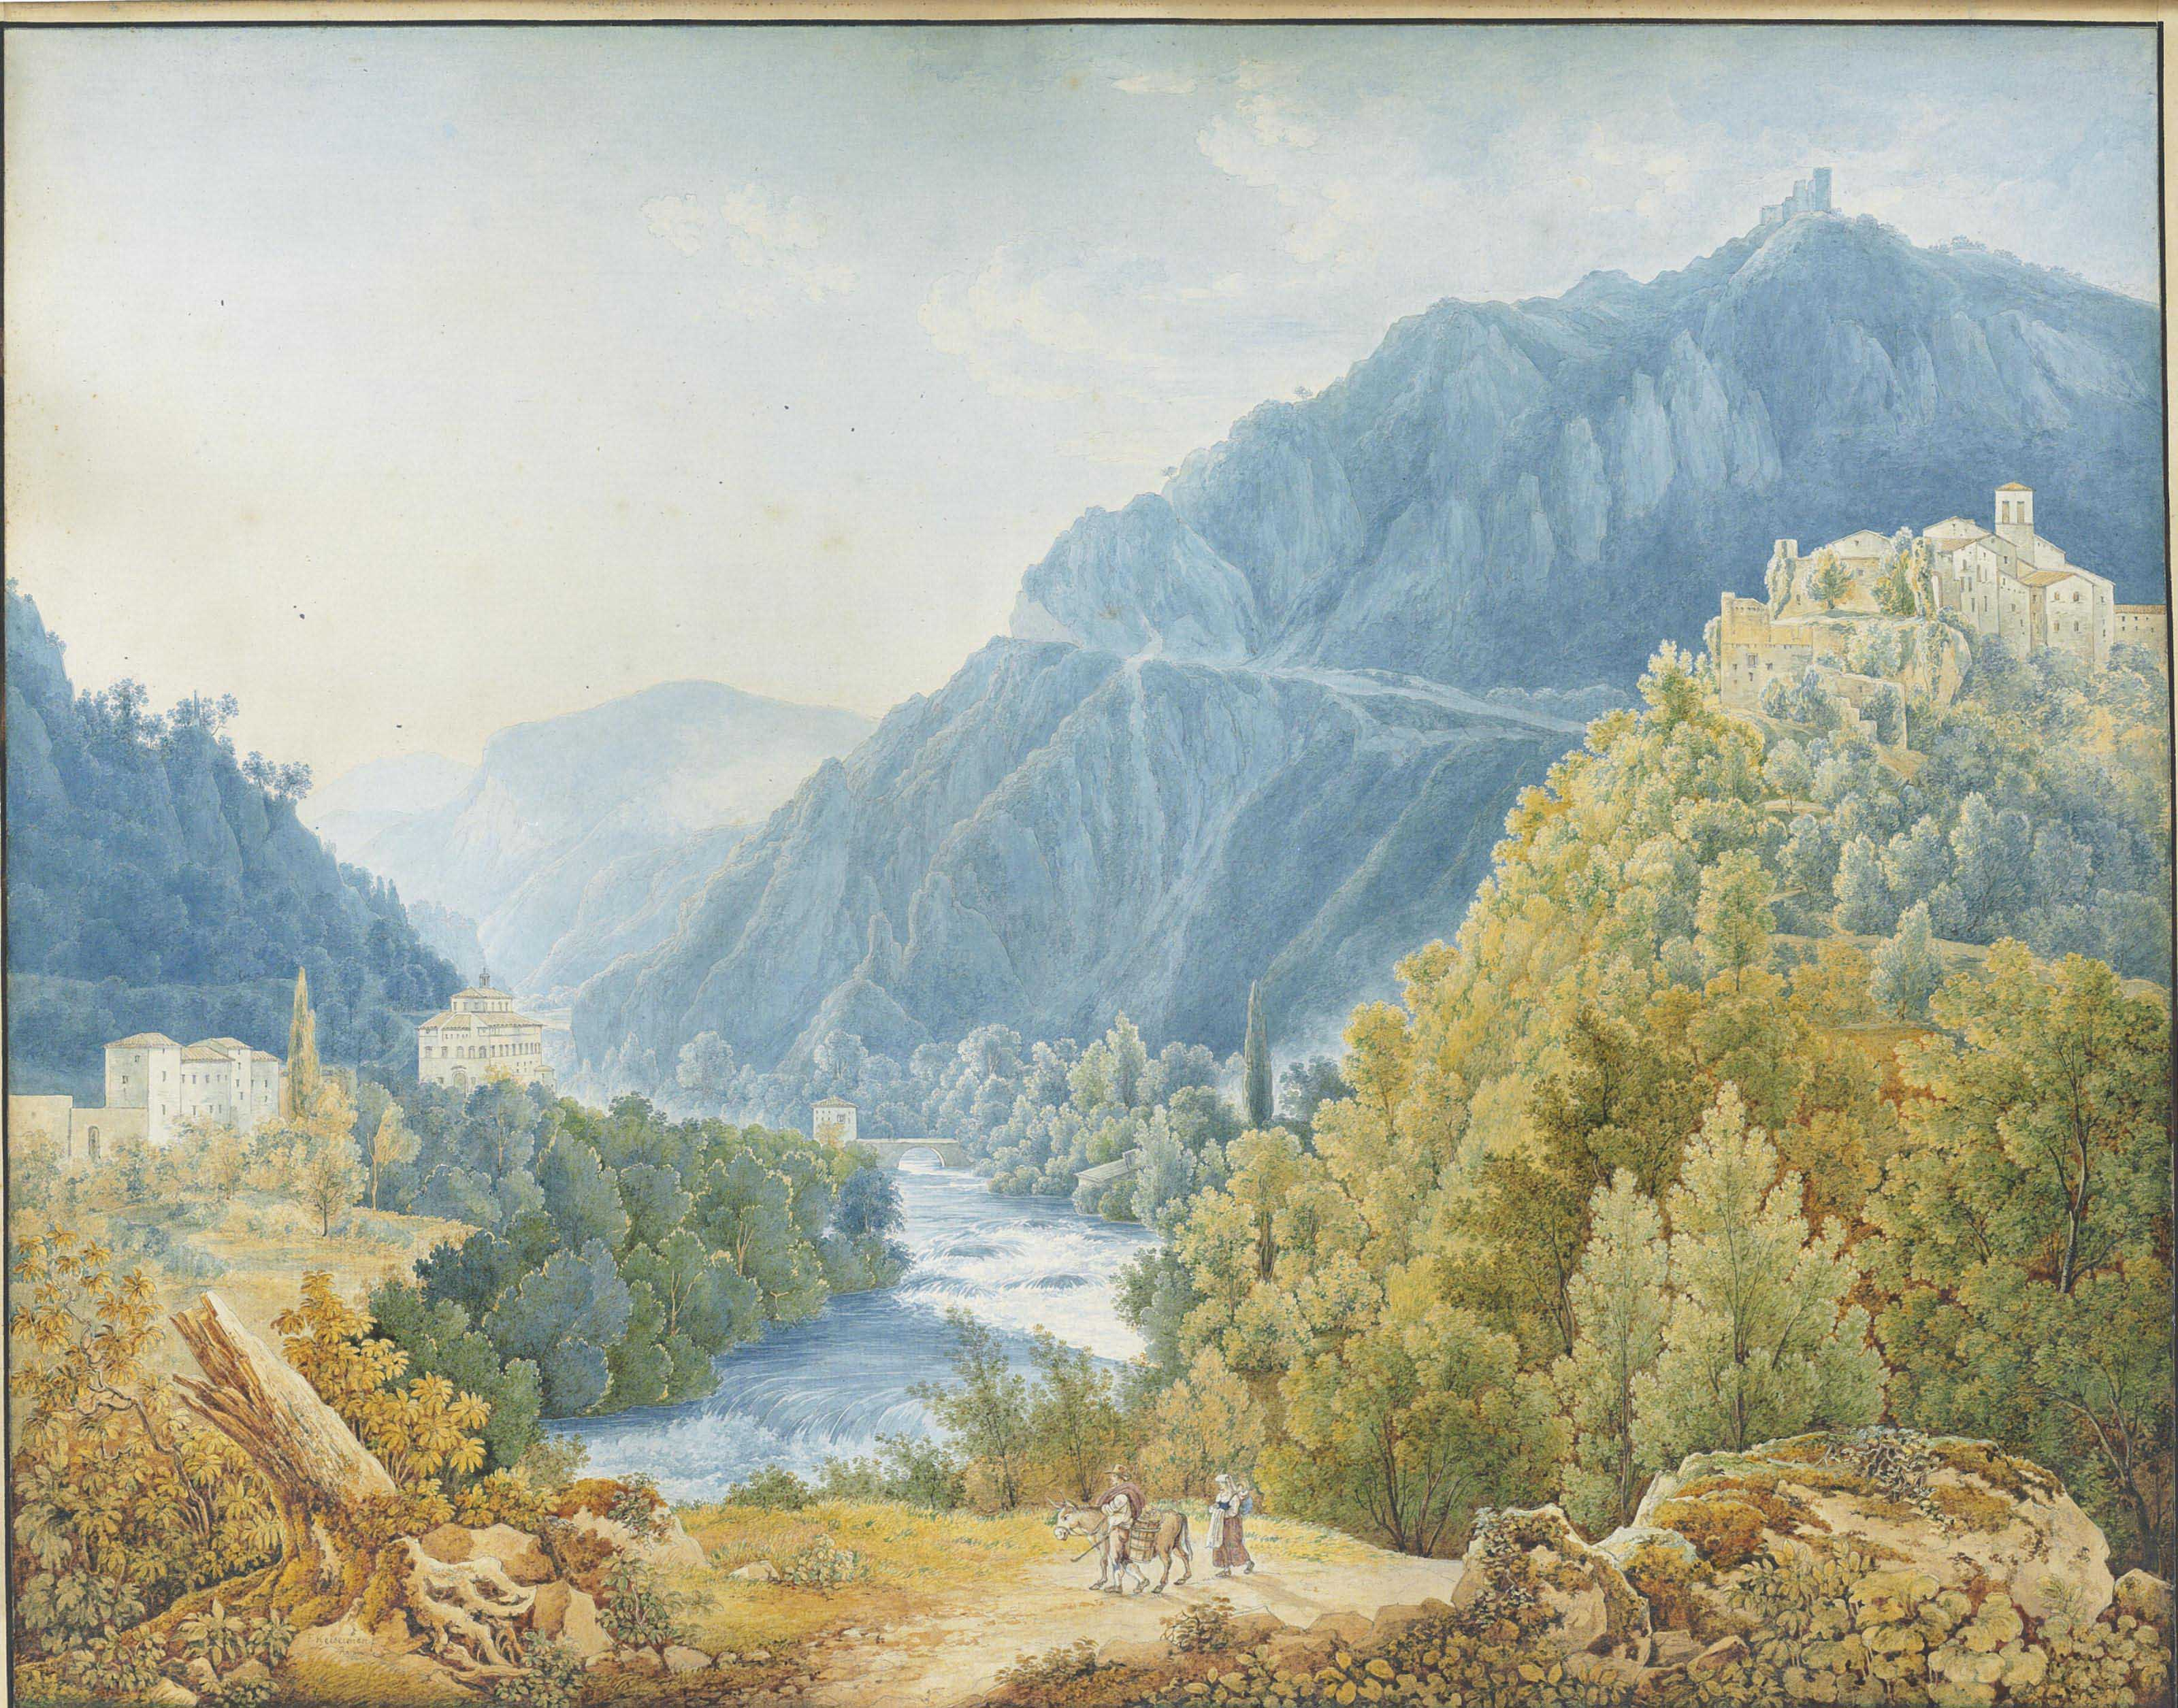 View of the valley of Terni with the ruins of the Castle of Papigno and the Church of Santa Maria Annunziata